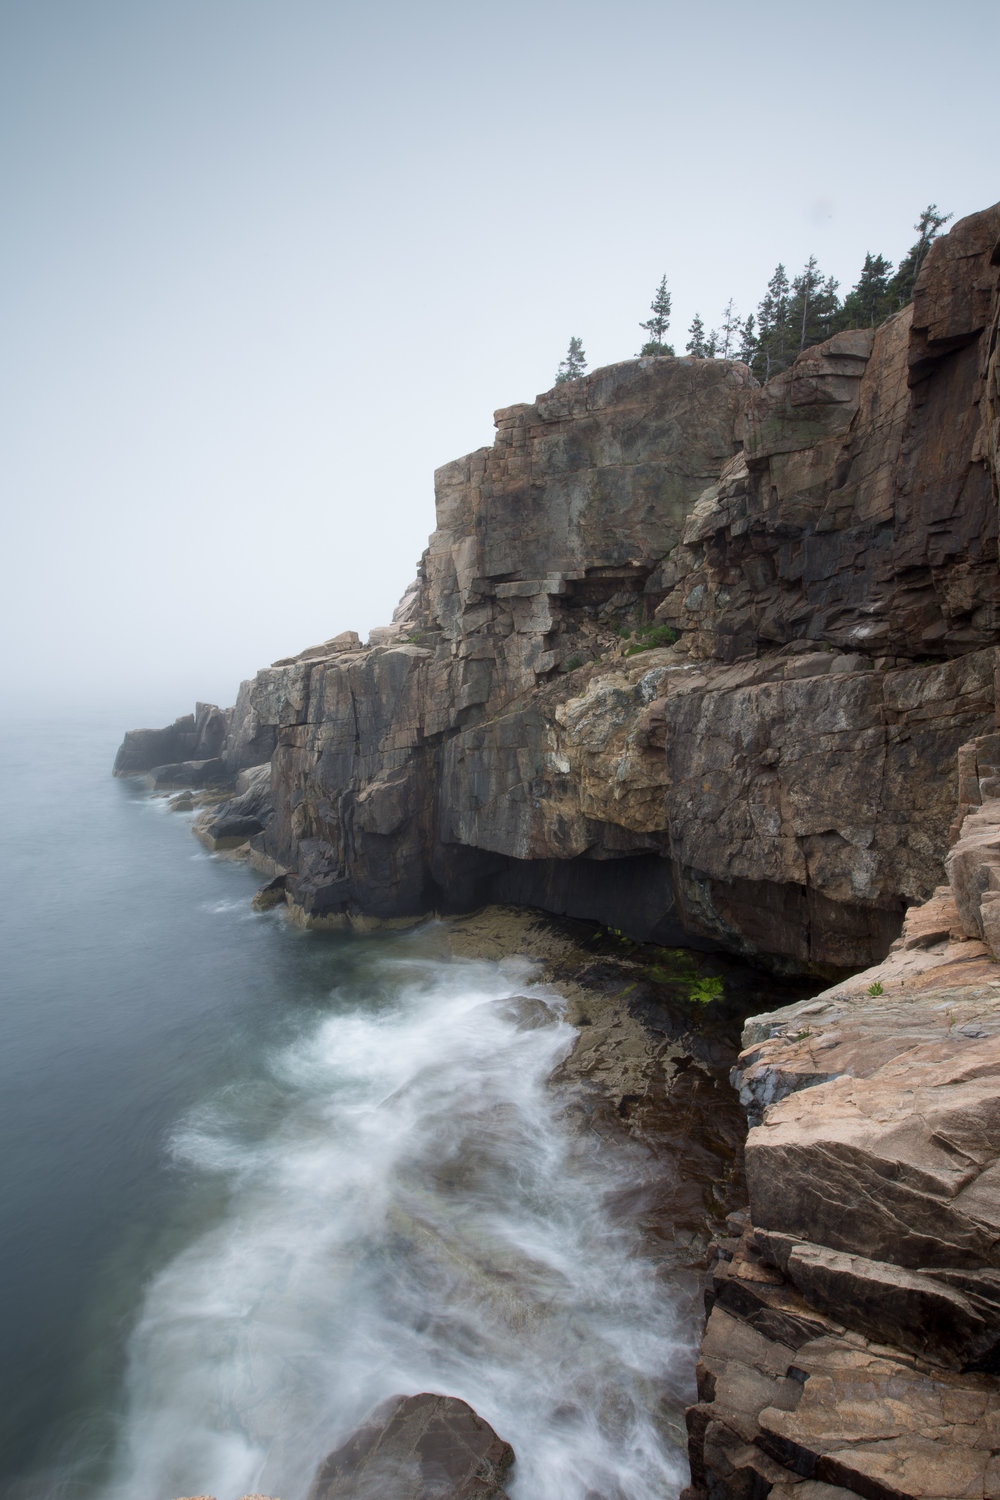 Acadia Cliffs by the Ocean